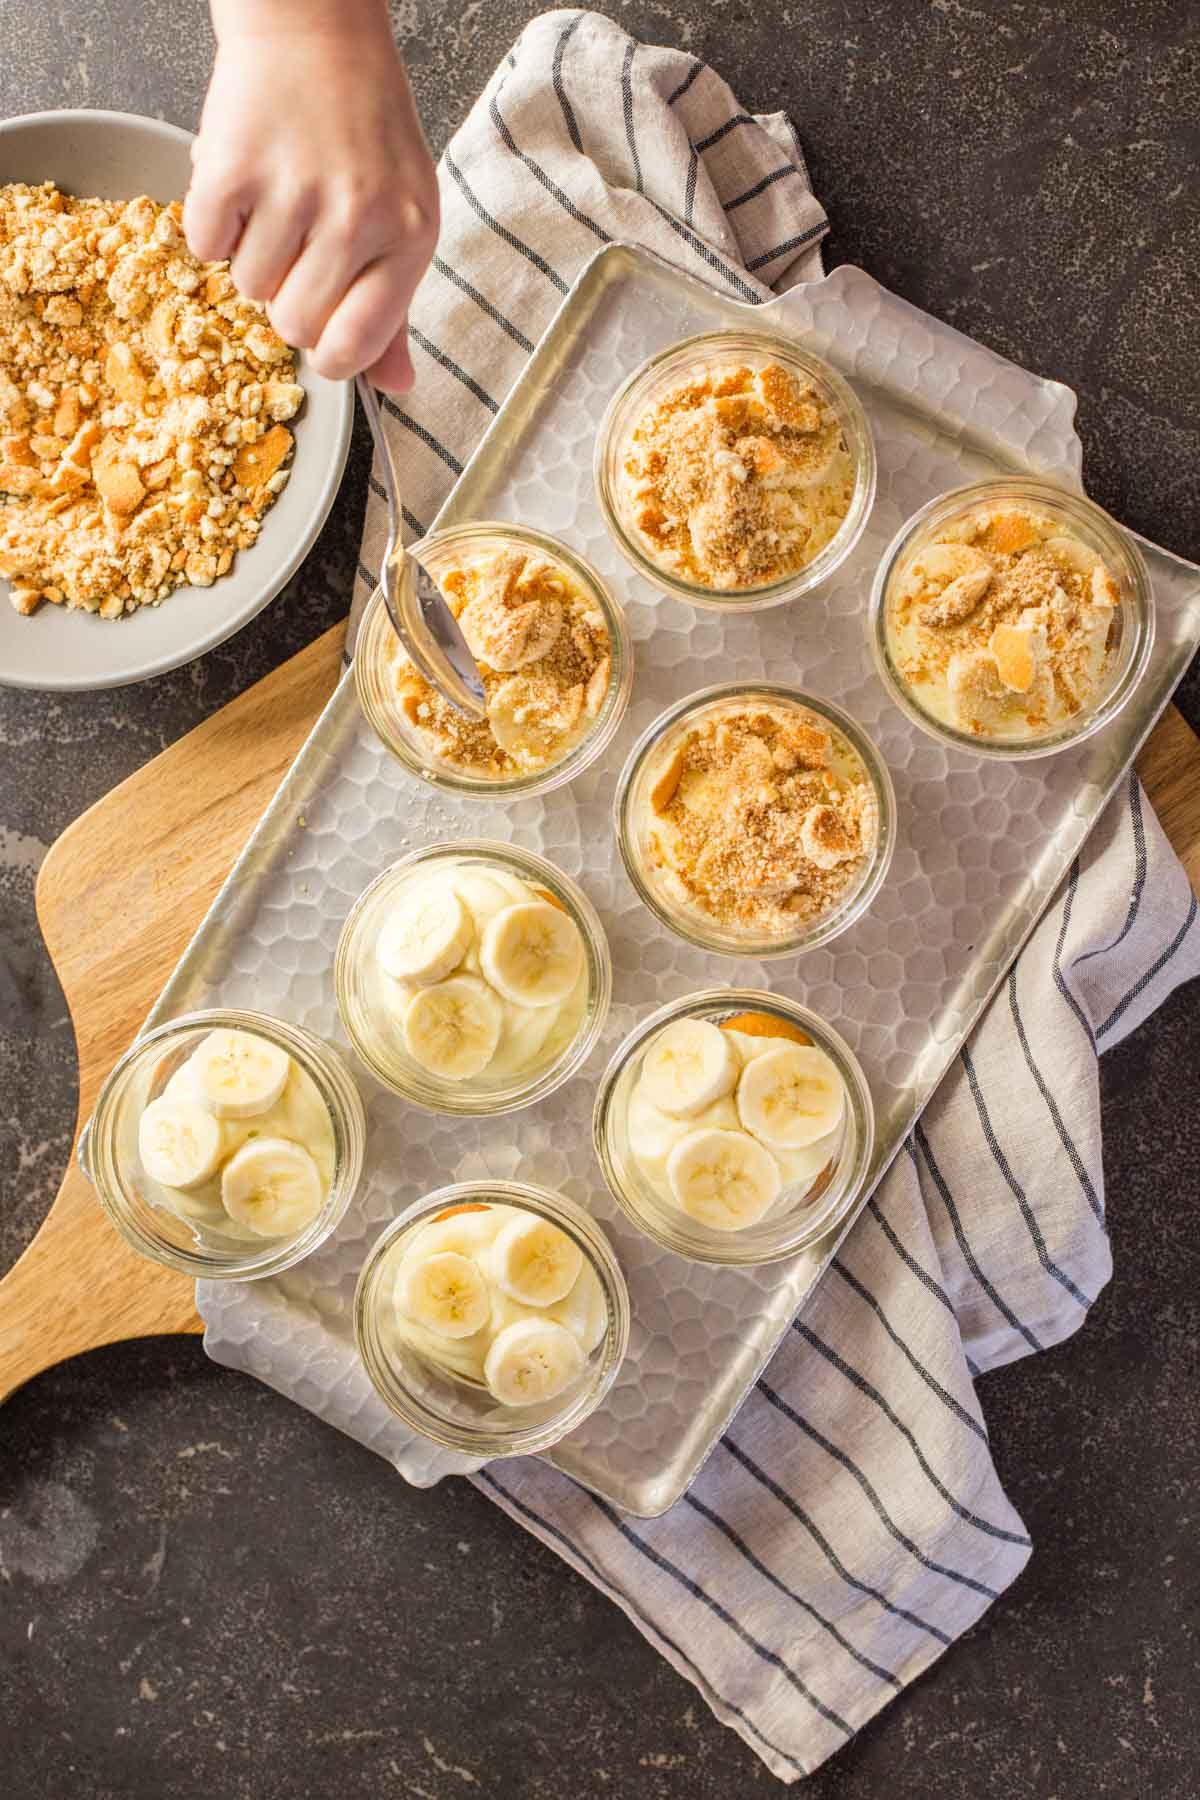 Spooning crushed Nilla wafers into individual banana pudding jars